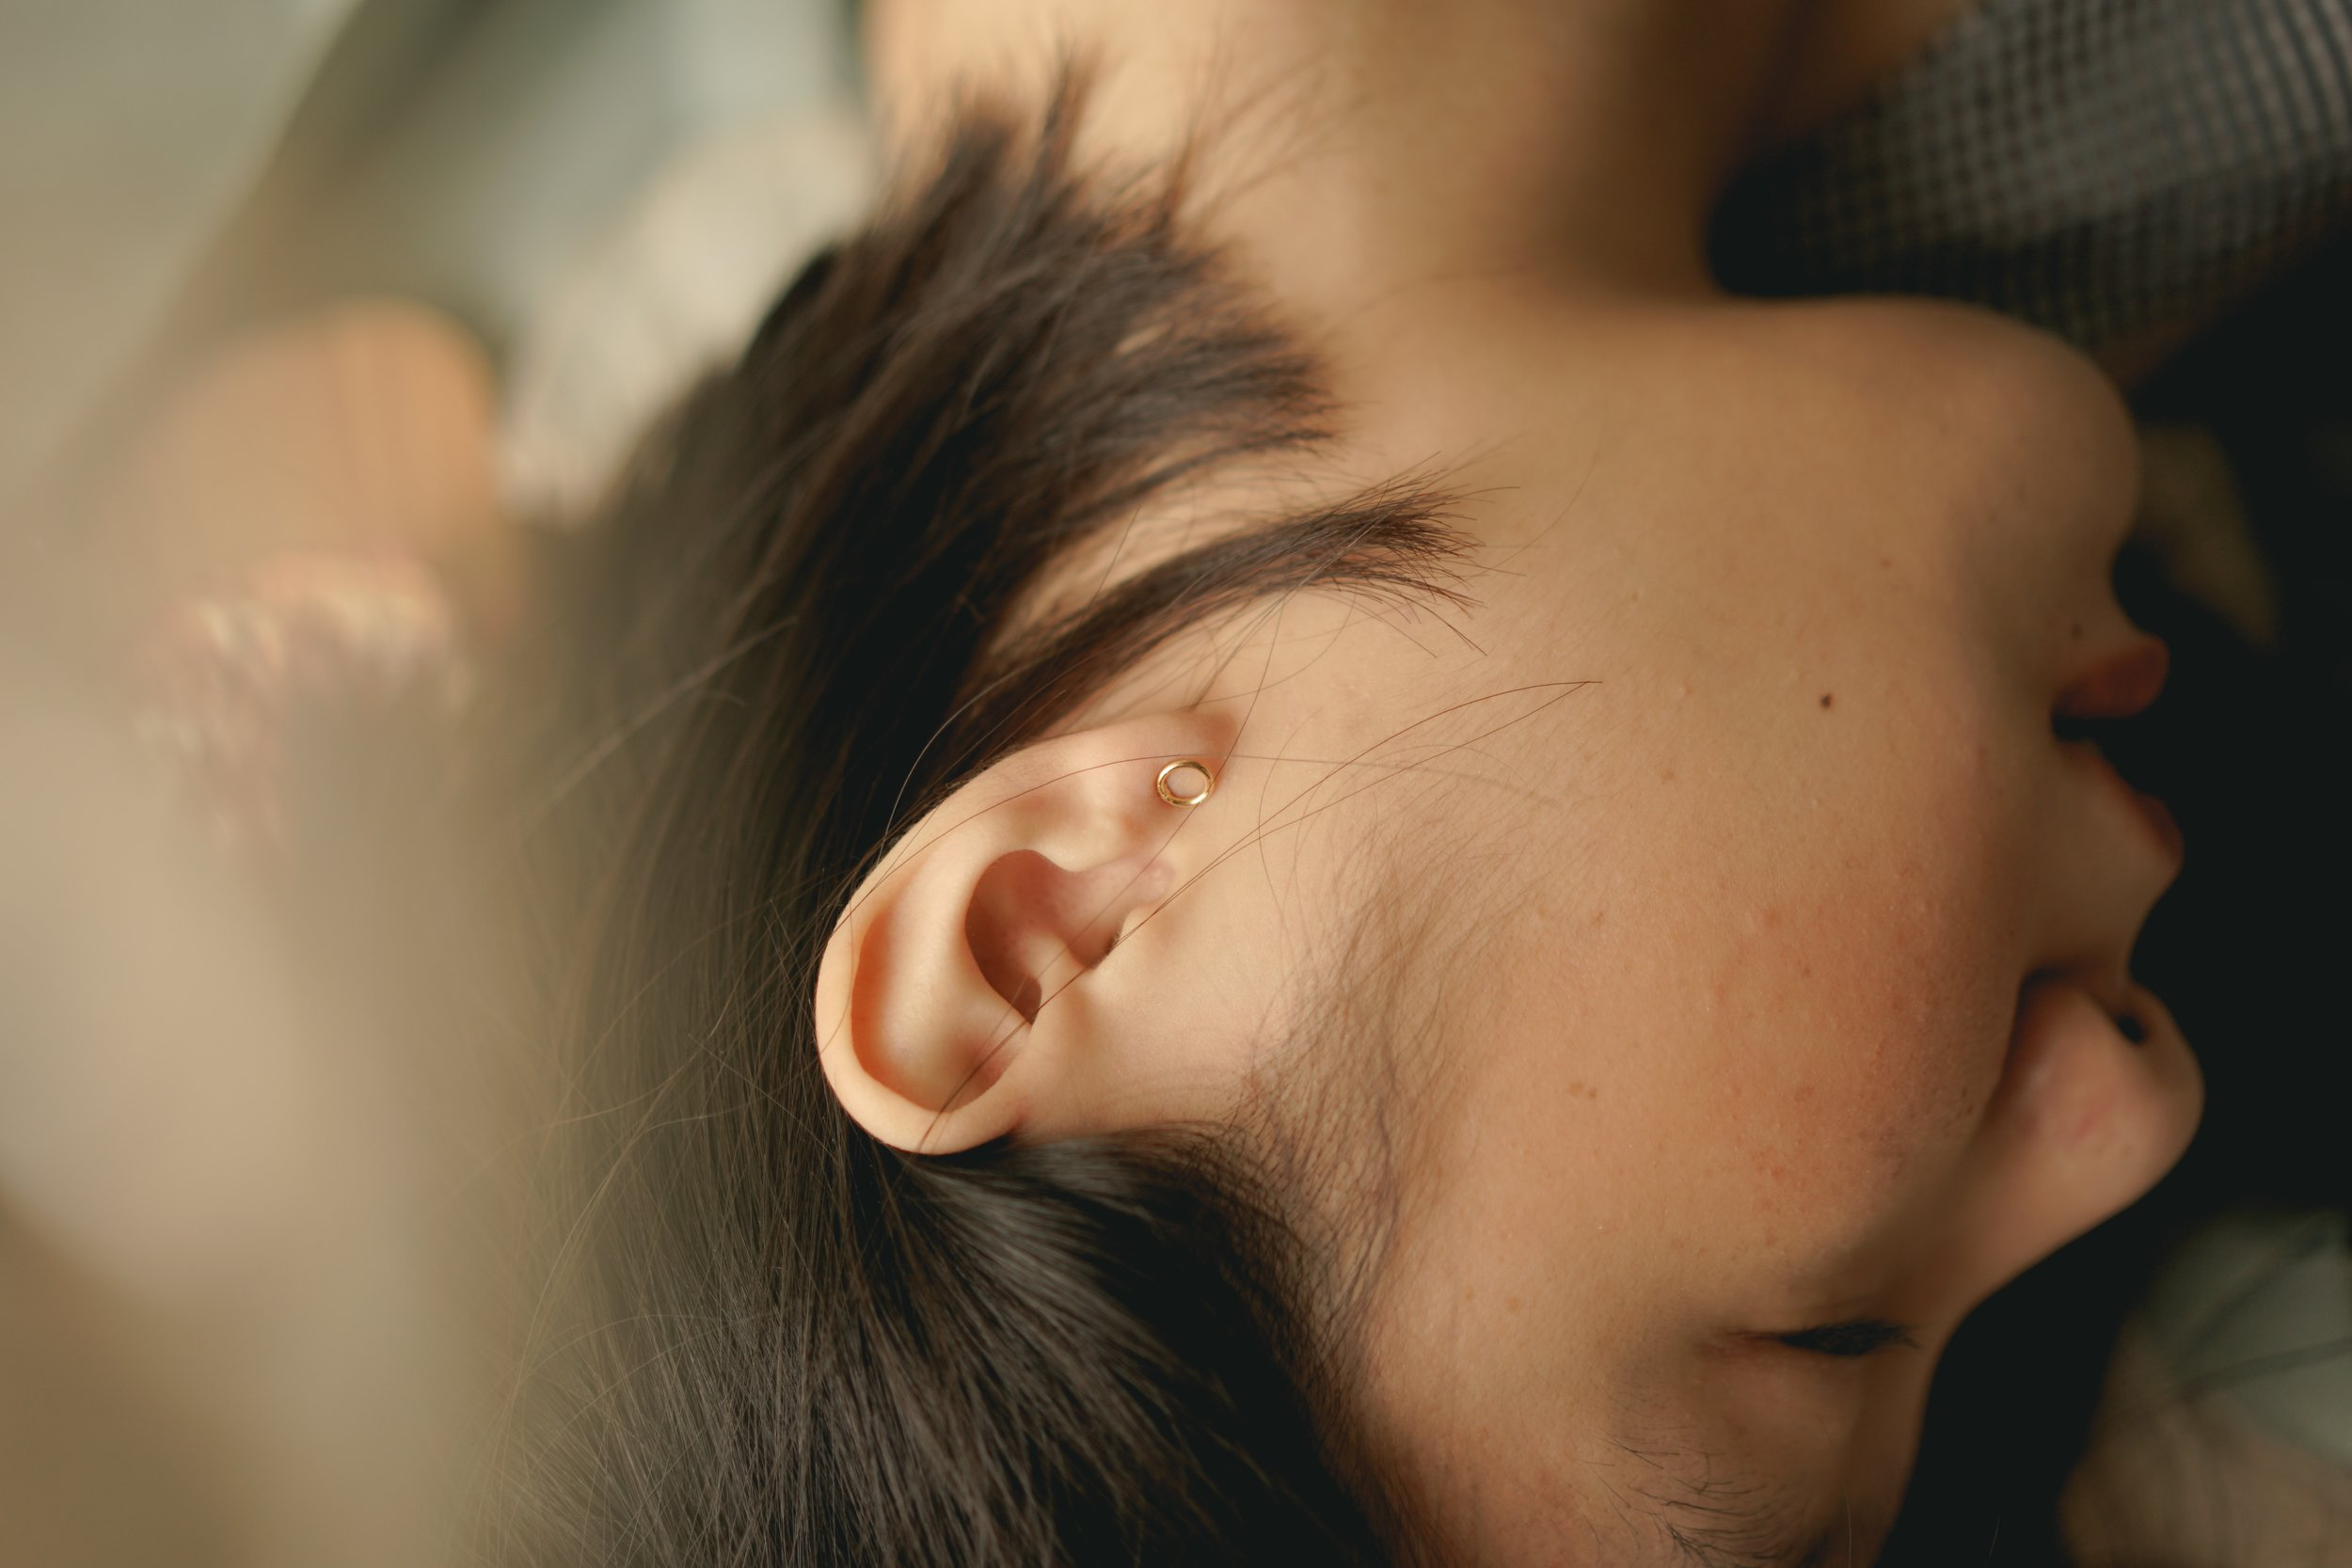 Ear candling - $40 for ½- 45 min treatmentCan be used to treat:Excess ear waxEar infectionsSwimmers earRelief of tinnitusRelief of sinus pain and pressureHeadachesItchy earsDraw out toxins and pollutantsEar candling involves inserting the ear candle into the ear and lighting the other end. Heat created from the flame helps draw out ear wax and other debris from the ear canal. The technique has been used for thousands of years in Indian, Chinese, Tibetan and American Indian cultures.On a holistic level ear candling is thought to have a psychic, emotional and spiritual impact on a person and can remove negative toxins and revives the energy flow to the chakras.